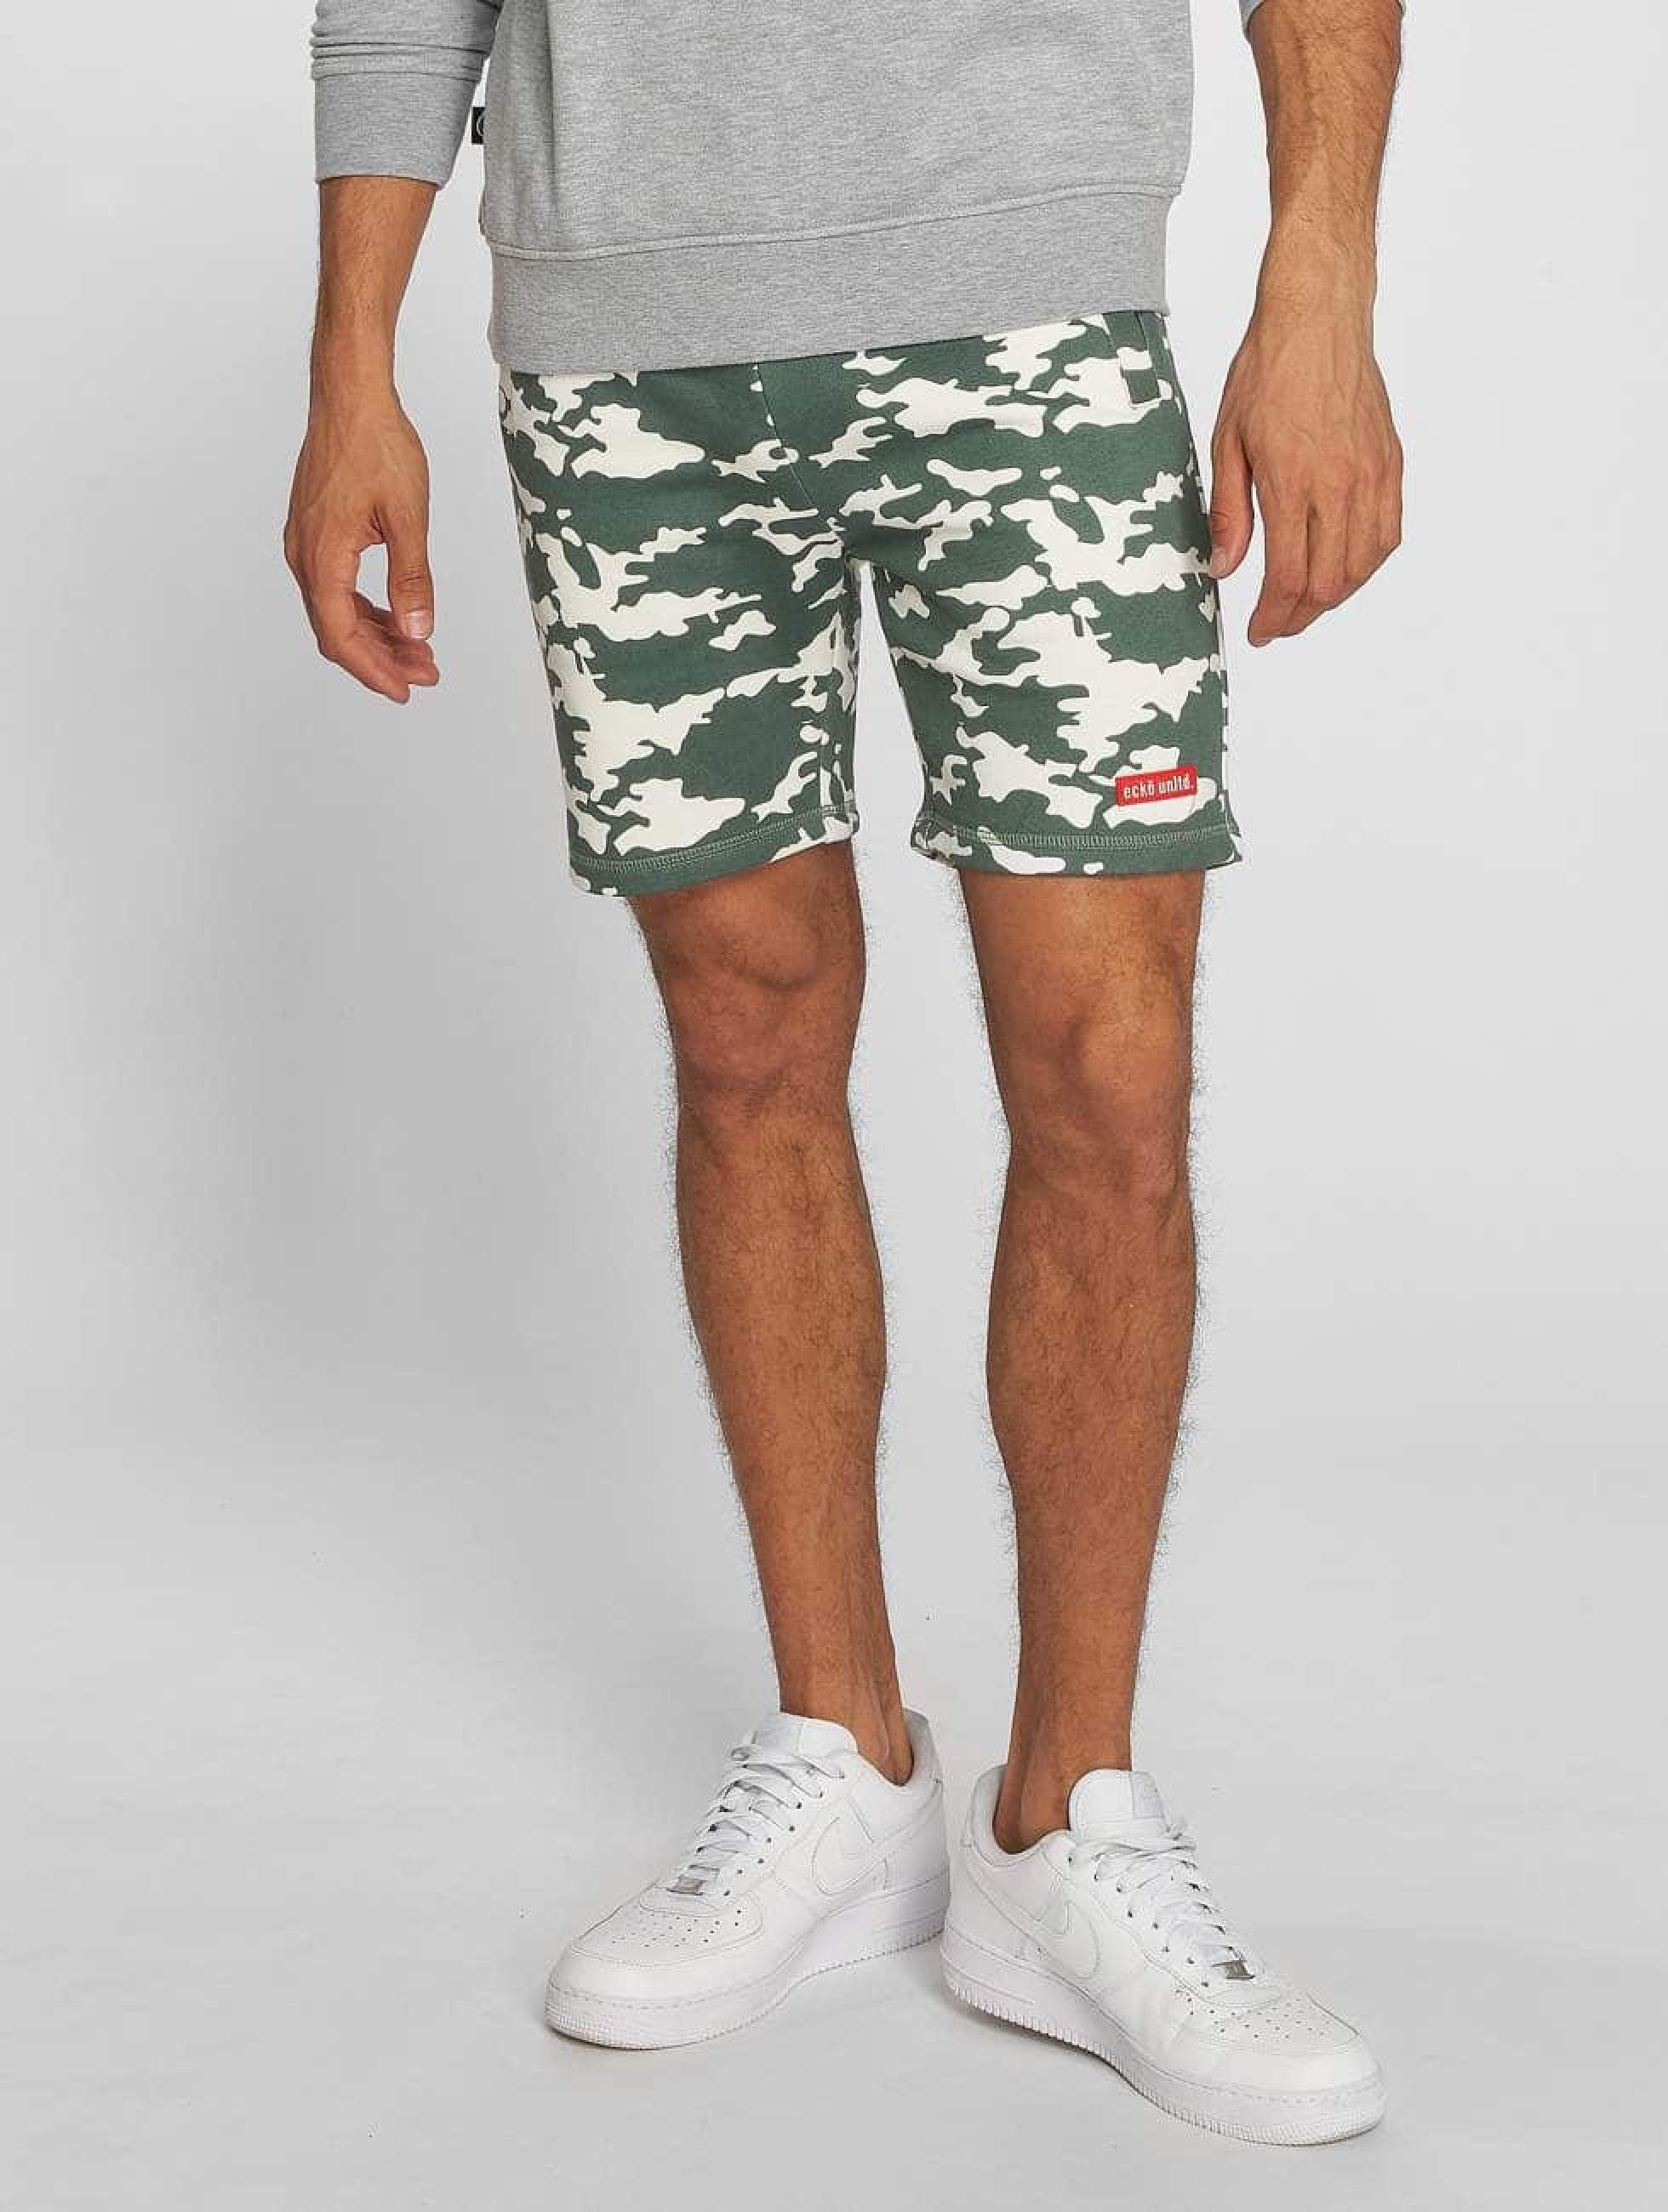 Ecko Unltd. / Short BananaBeach in camouflage XL